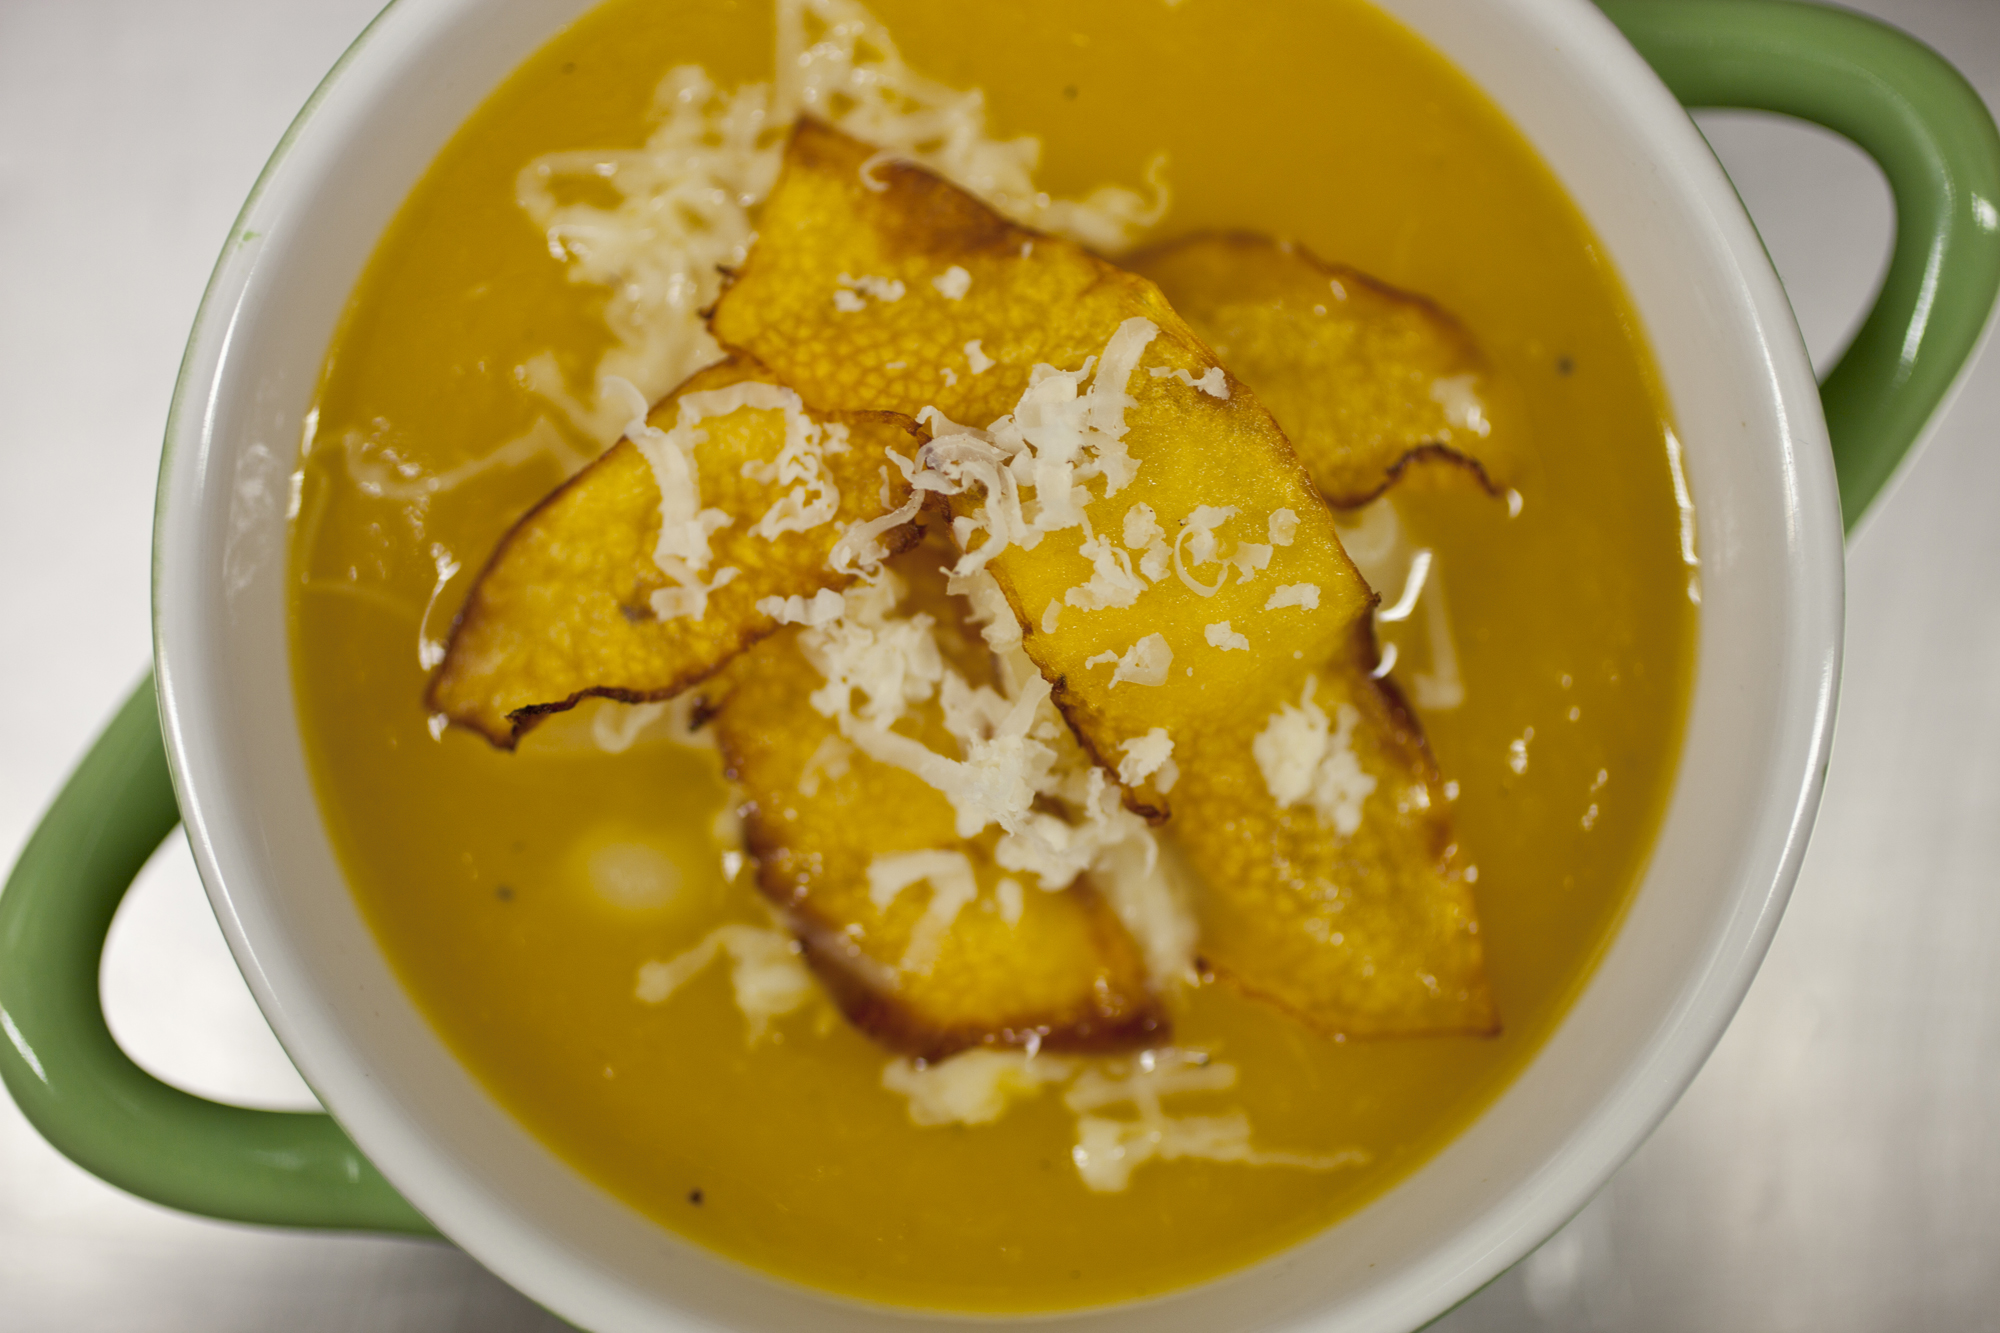 Pour soup into bowls, add pumpkin dice and top with gruyere cheese and ...